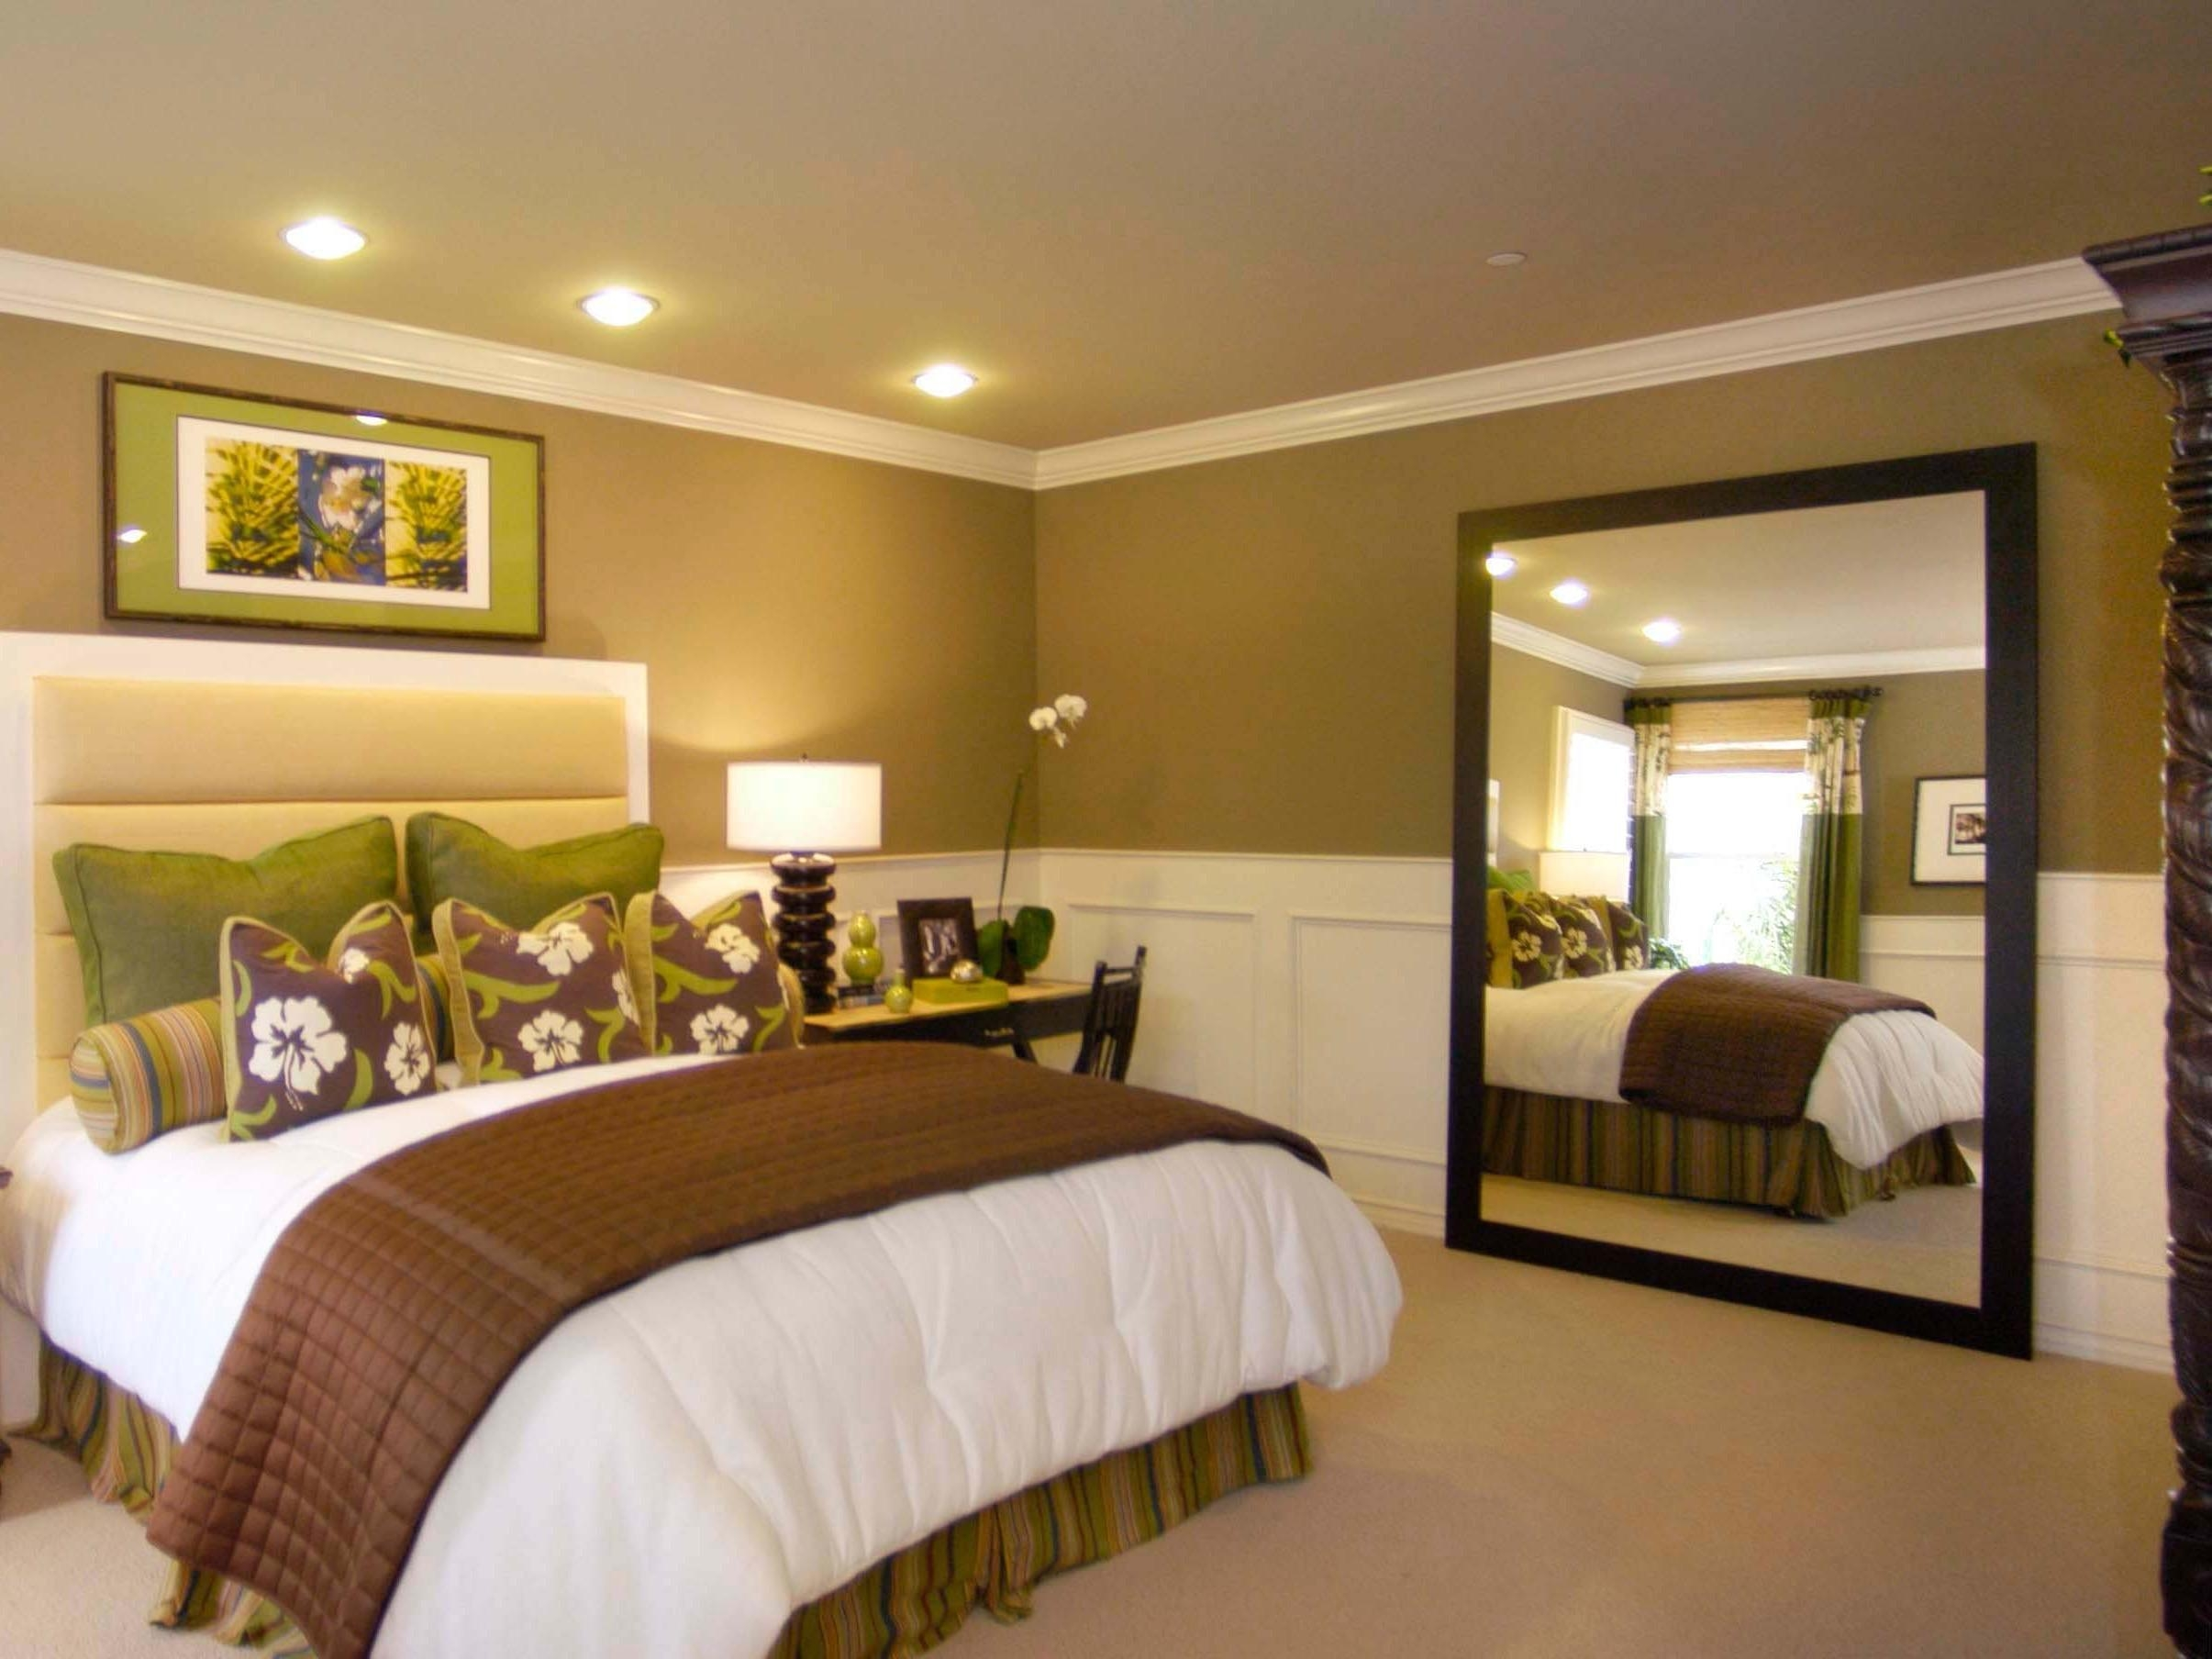 20 Ideas of Ceiling Mirrors for Bedroom  Mirror Ideas